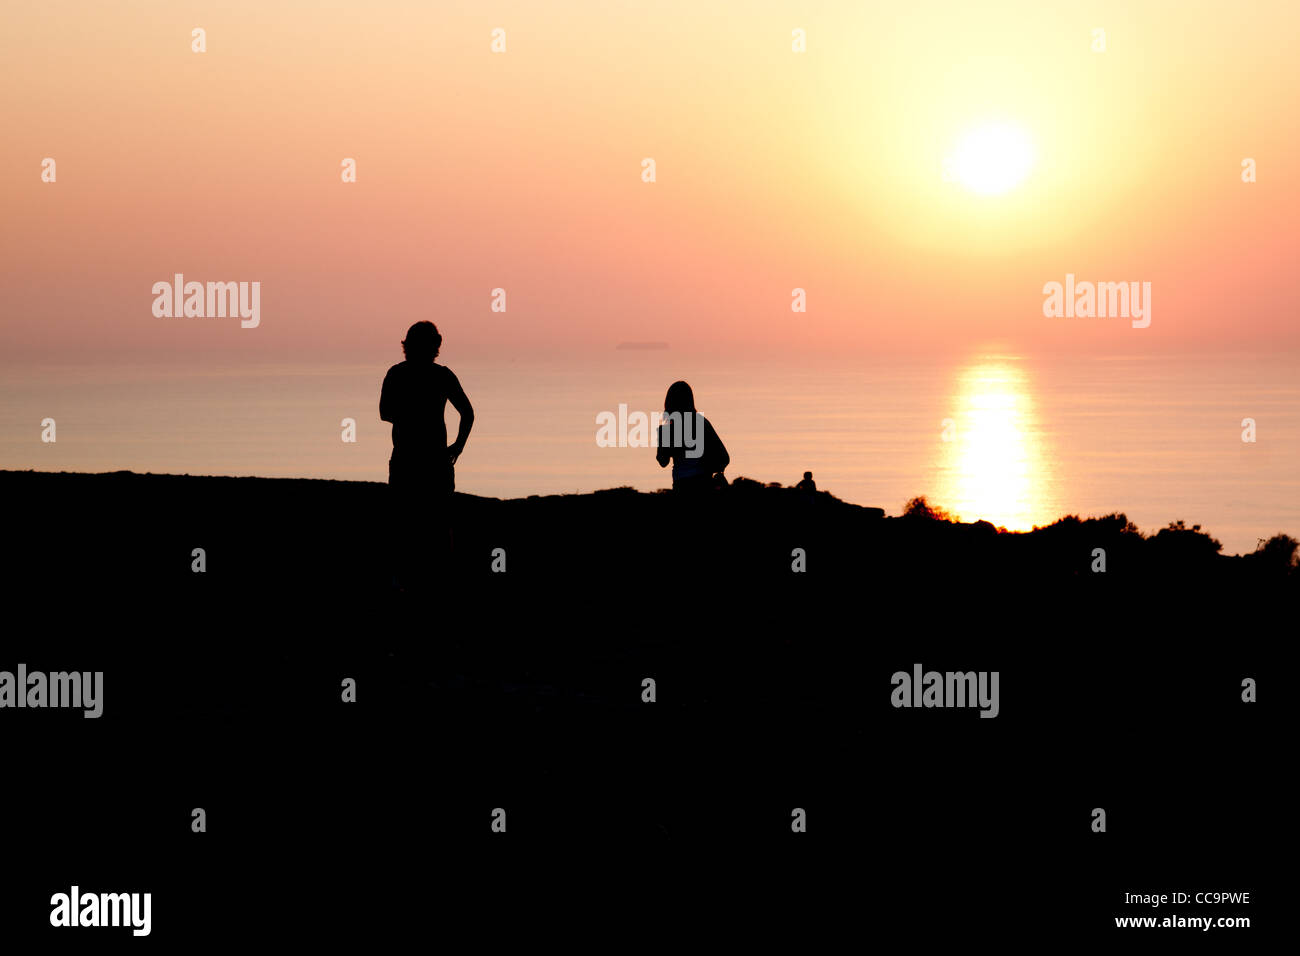 Two People Silouettes on Sunset in Lampedusa - Stock Image